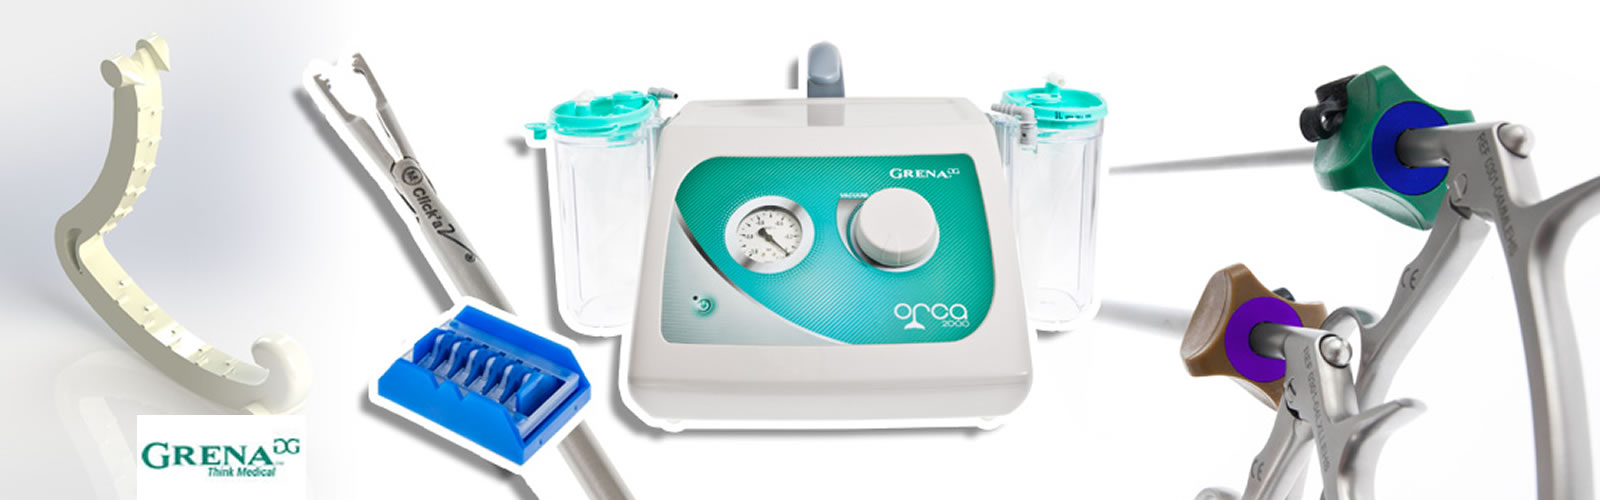 Grena Medical Products right here at Geolis